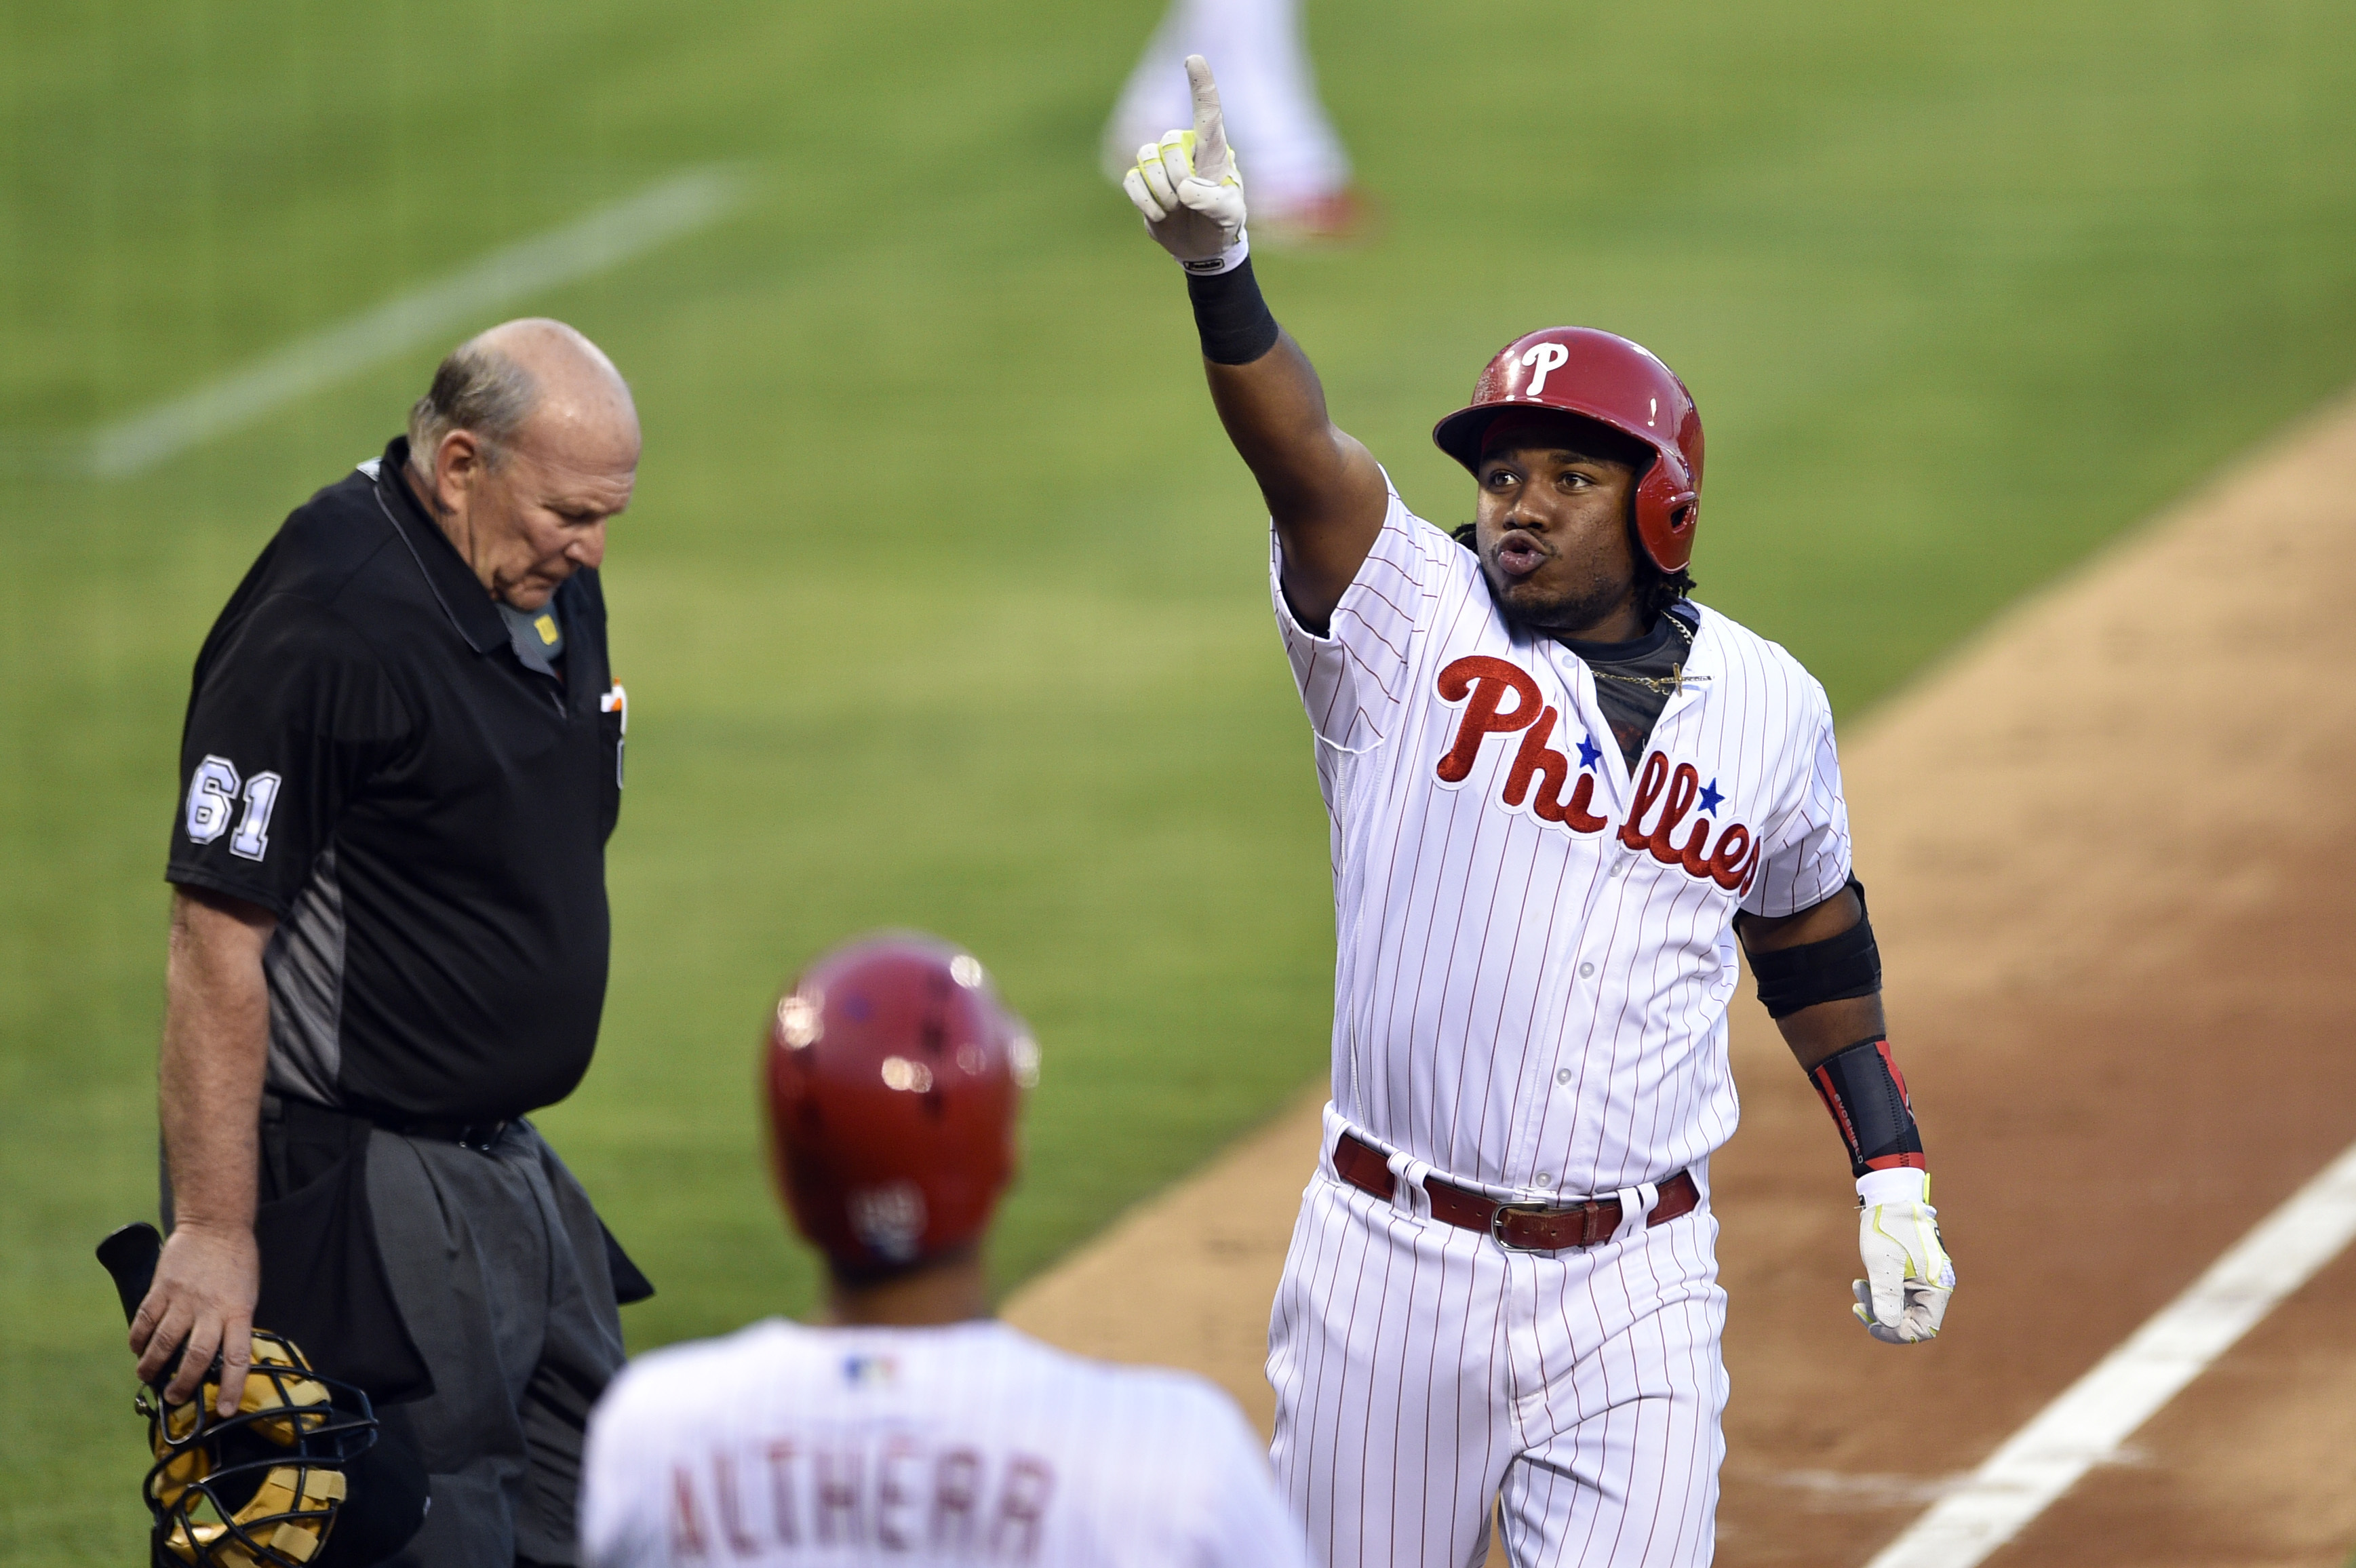 Philadelphia Phillies' Maikel Franco, right, points to the crowd after hitting a three-run home run off San Francisco Giants' Madison Bumgarner during the second inning of a baseball game, Tuesday, Aug. 2, 2016, in Philadelphia. (AP Photo/Derik Hamilton)